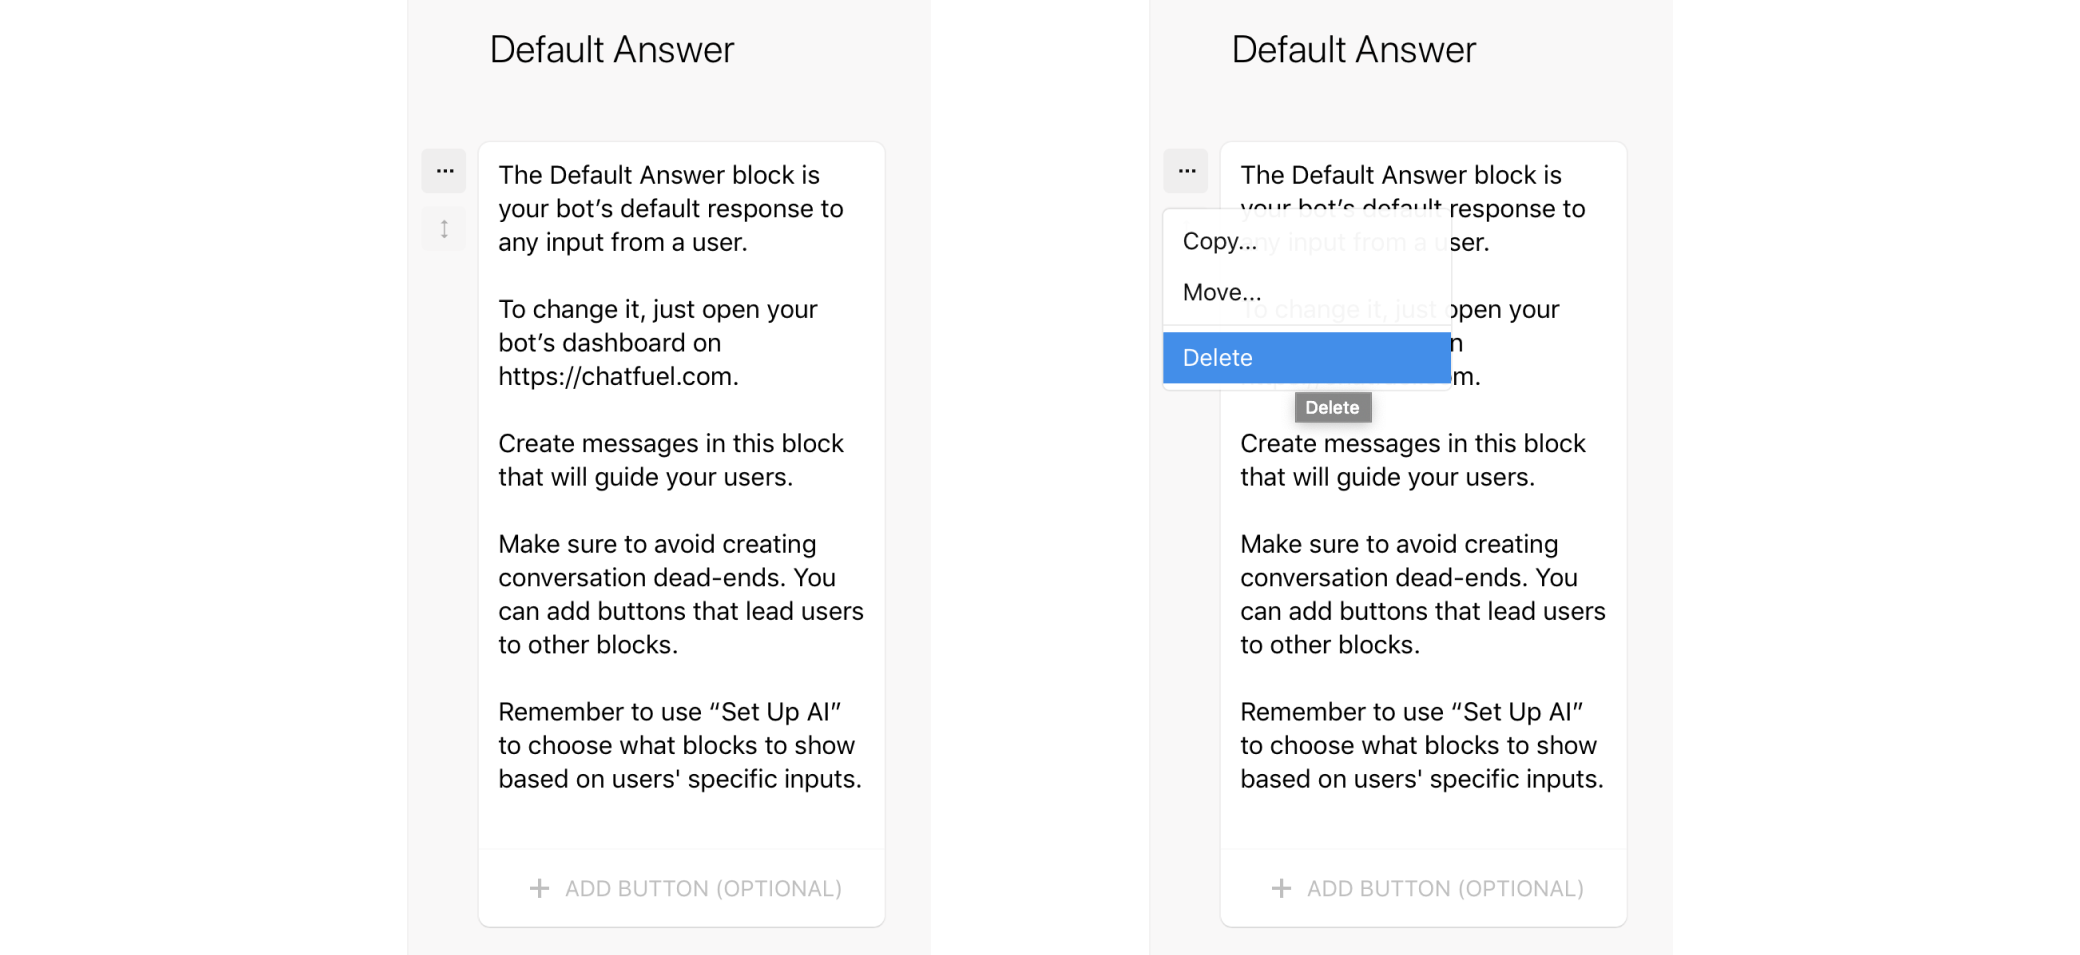 Delete the default answer for bot